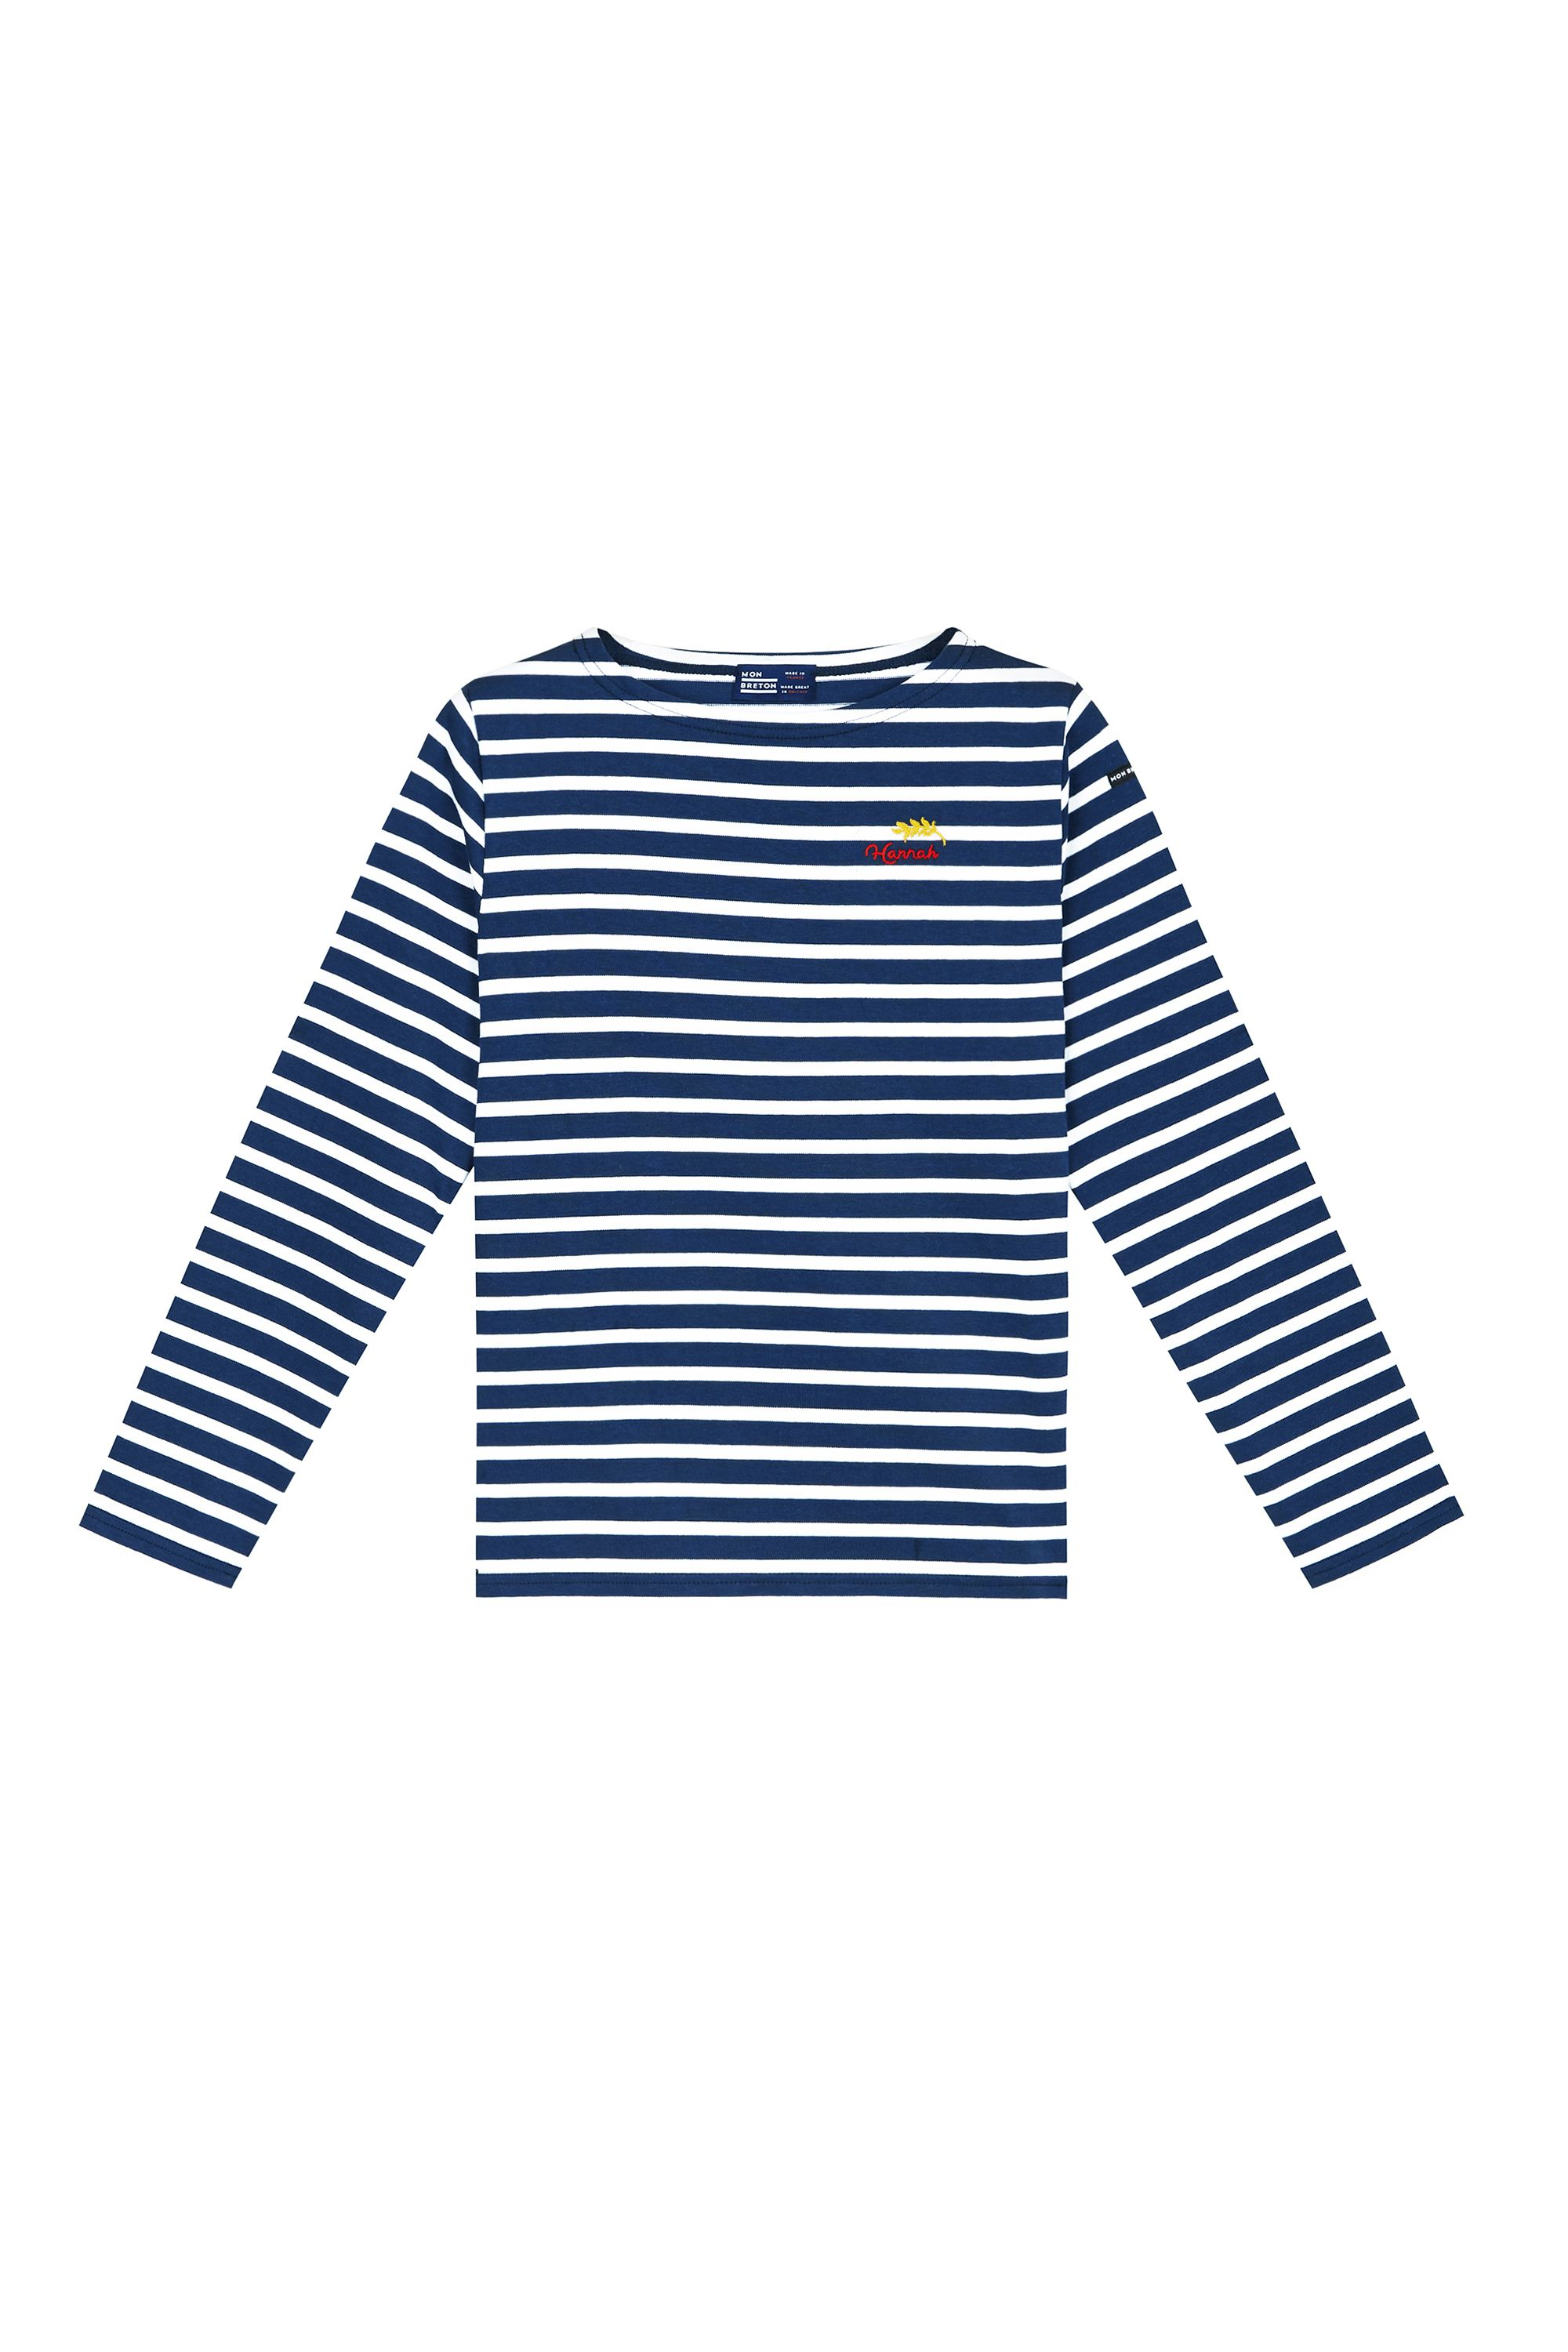 842409701b Best striped shirts - 10 classic Breton tops to buy now